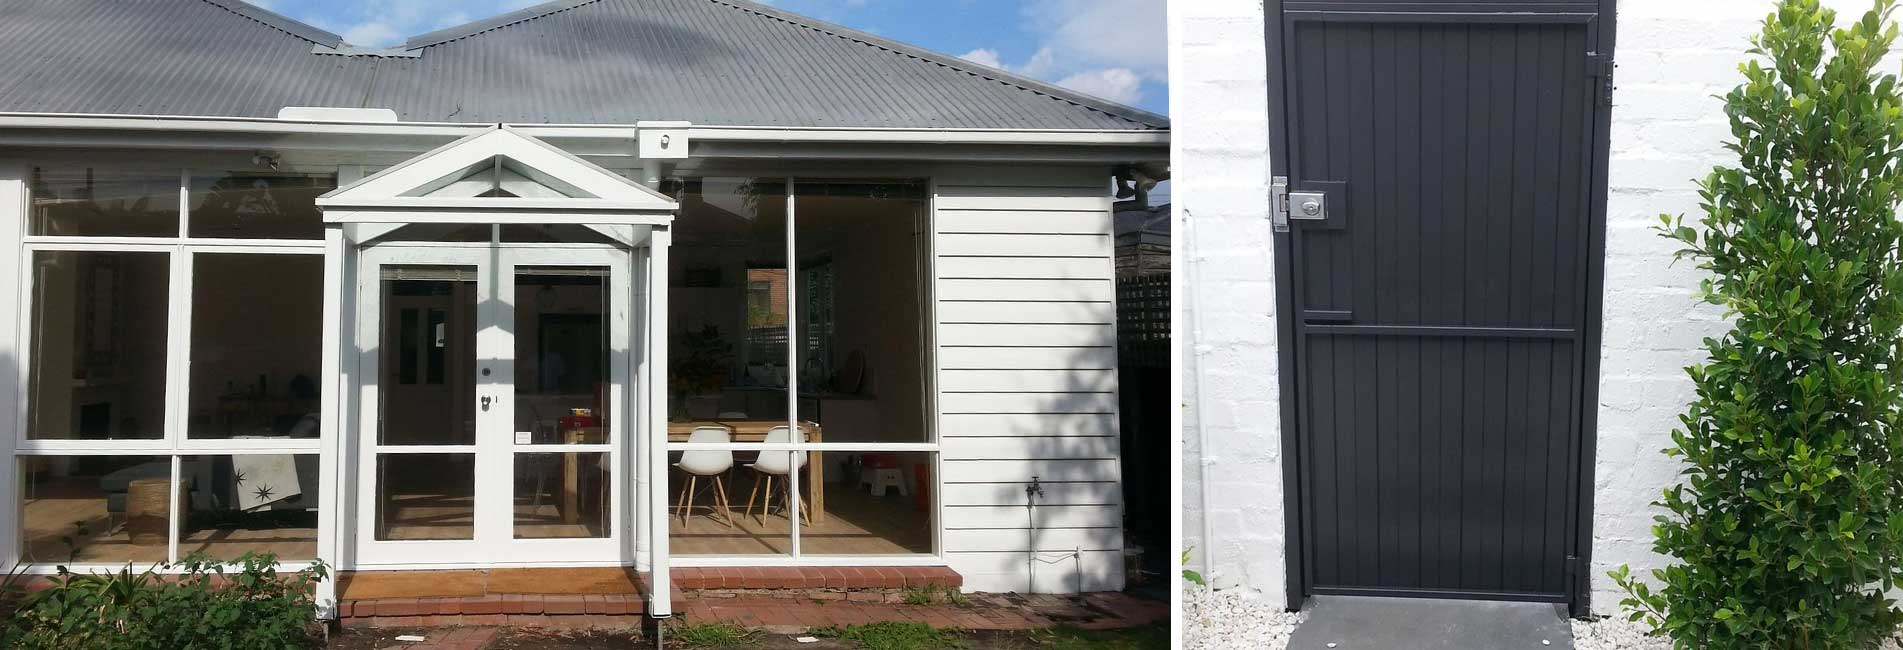 Window Painting Doncaster, Residential Painter Preston, Colour Advice Glen Waverly